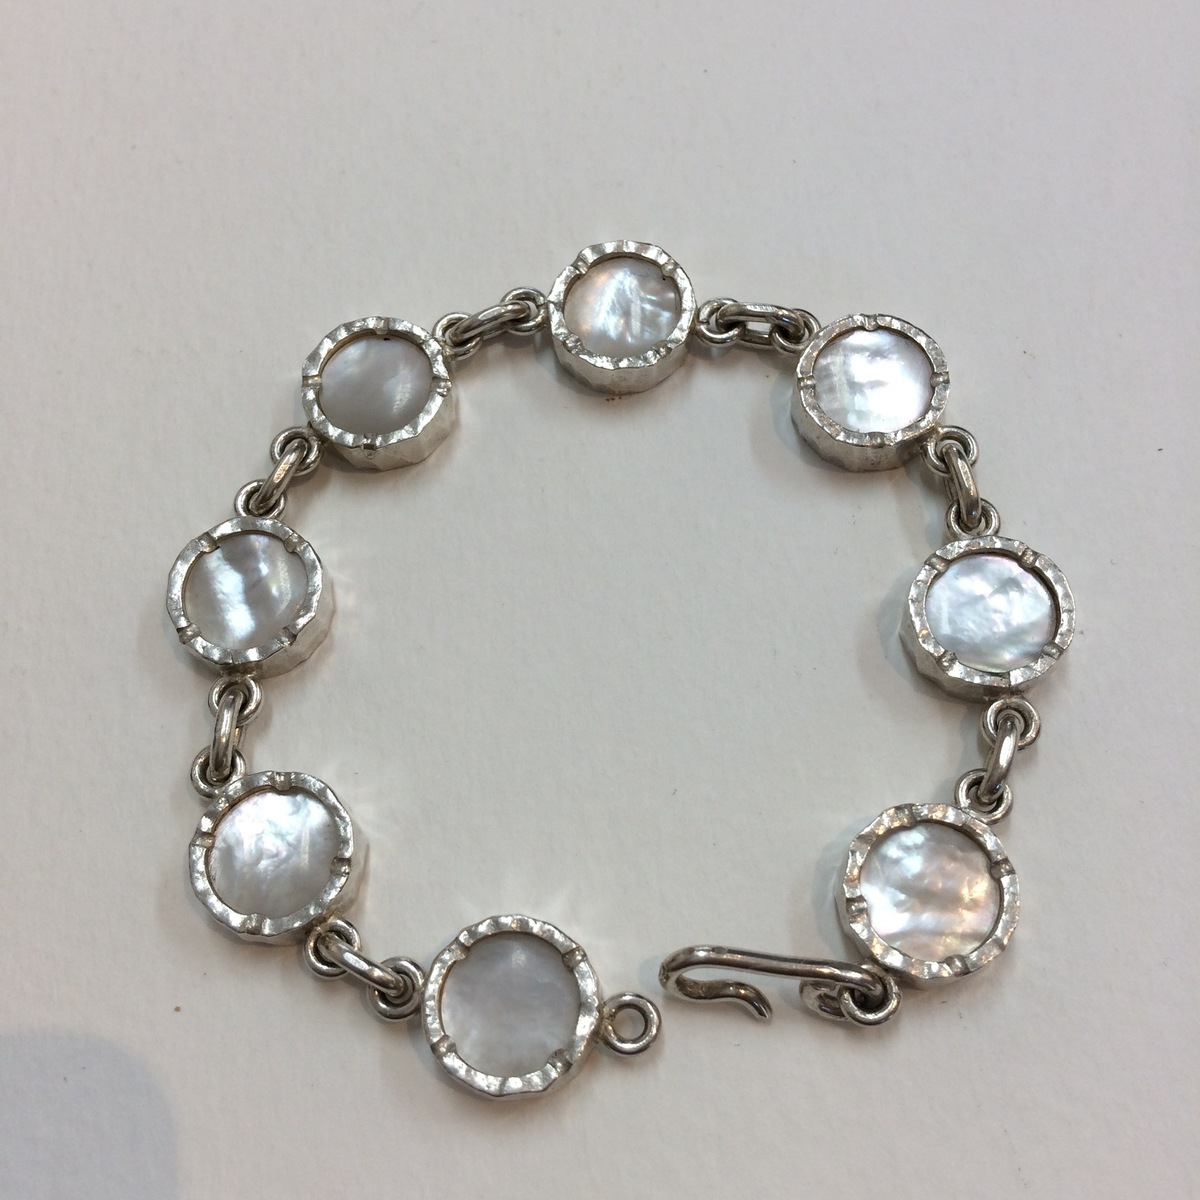 White Mother of Pearl bracelet